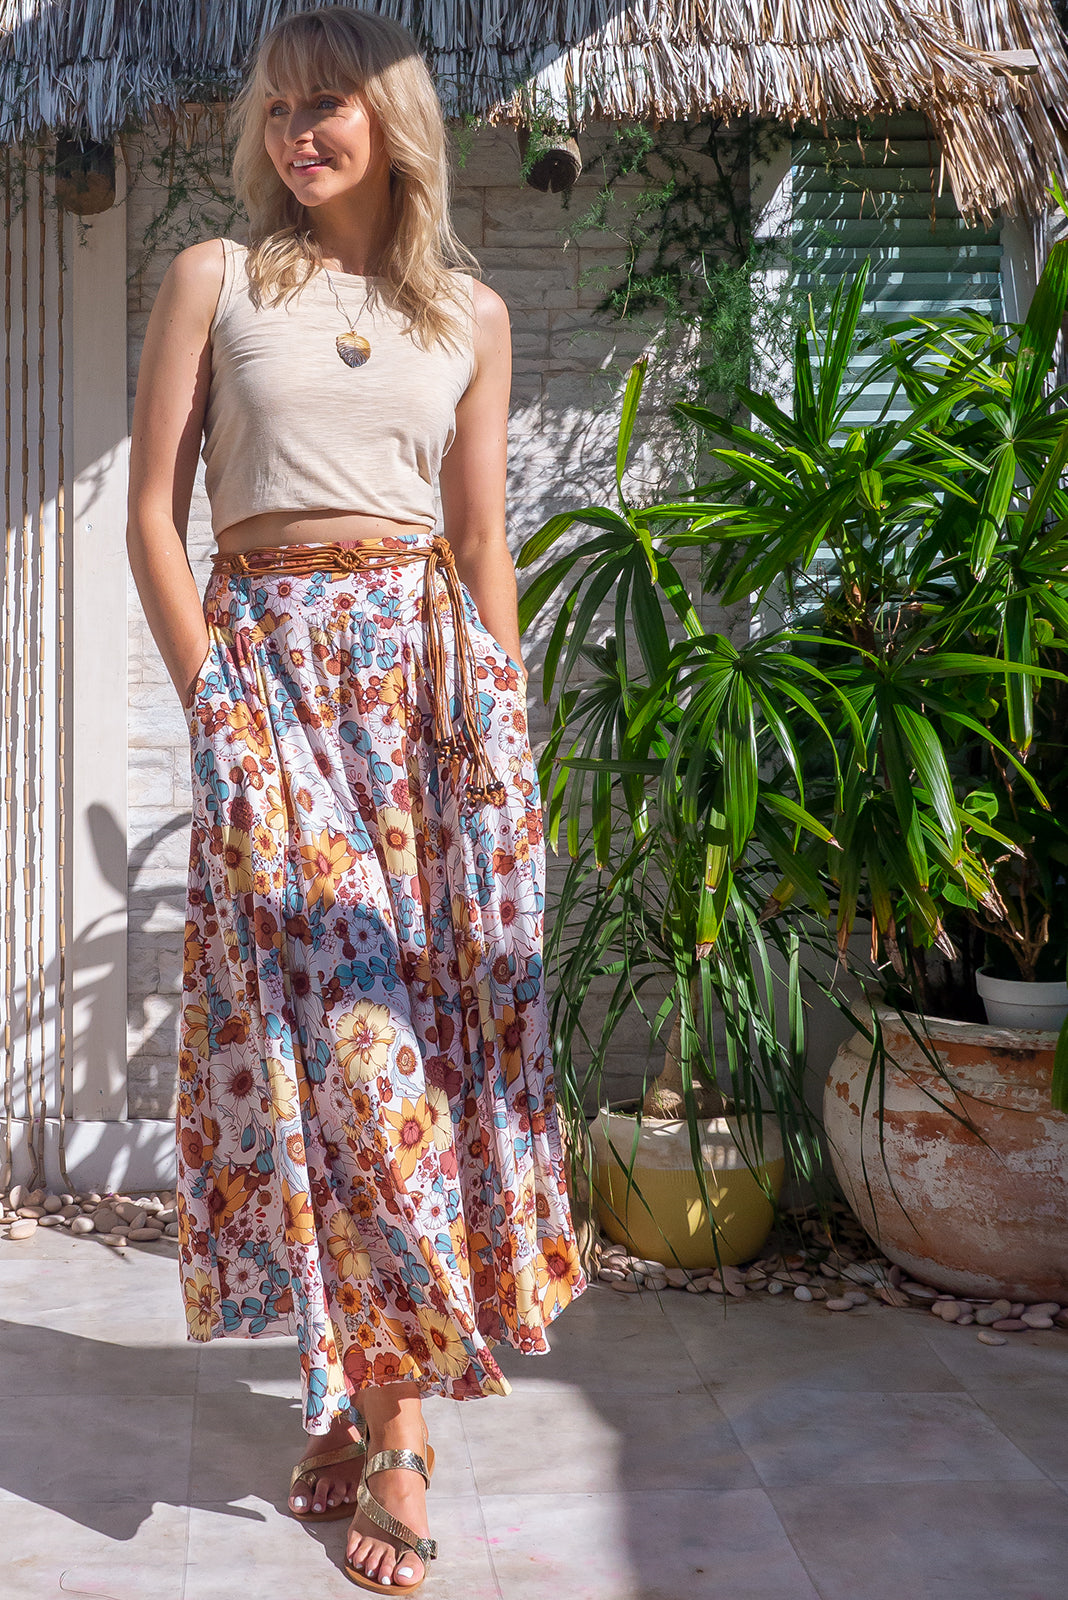 The Atlantis White Gold Maxi Skirt features double V-shaped waist yoke, inset panels from the yoke down, elasticated/shirred back of waist, side pockets, shapely hemline and 100% viscose in cream base with large vintage inspired floral print.